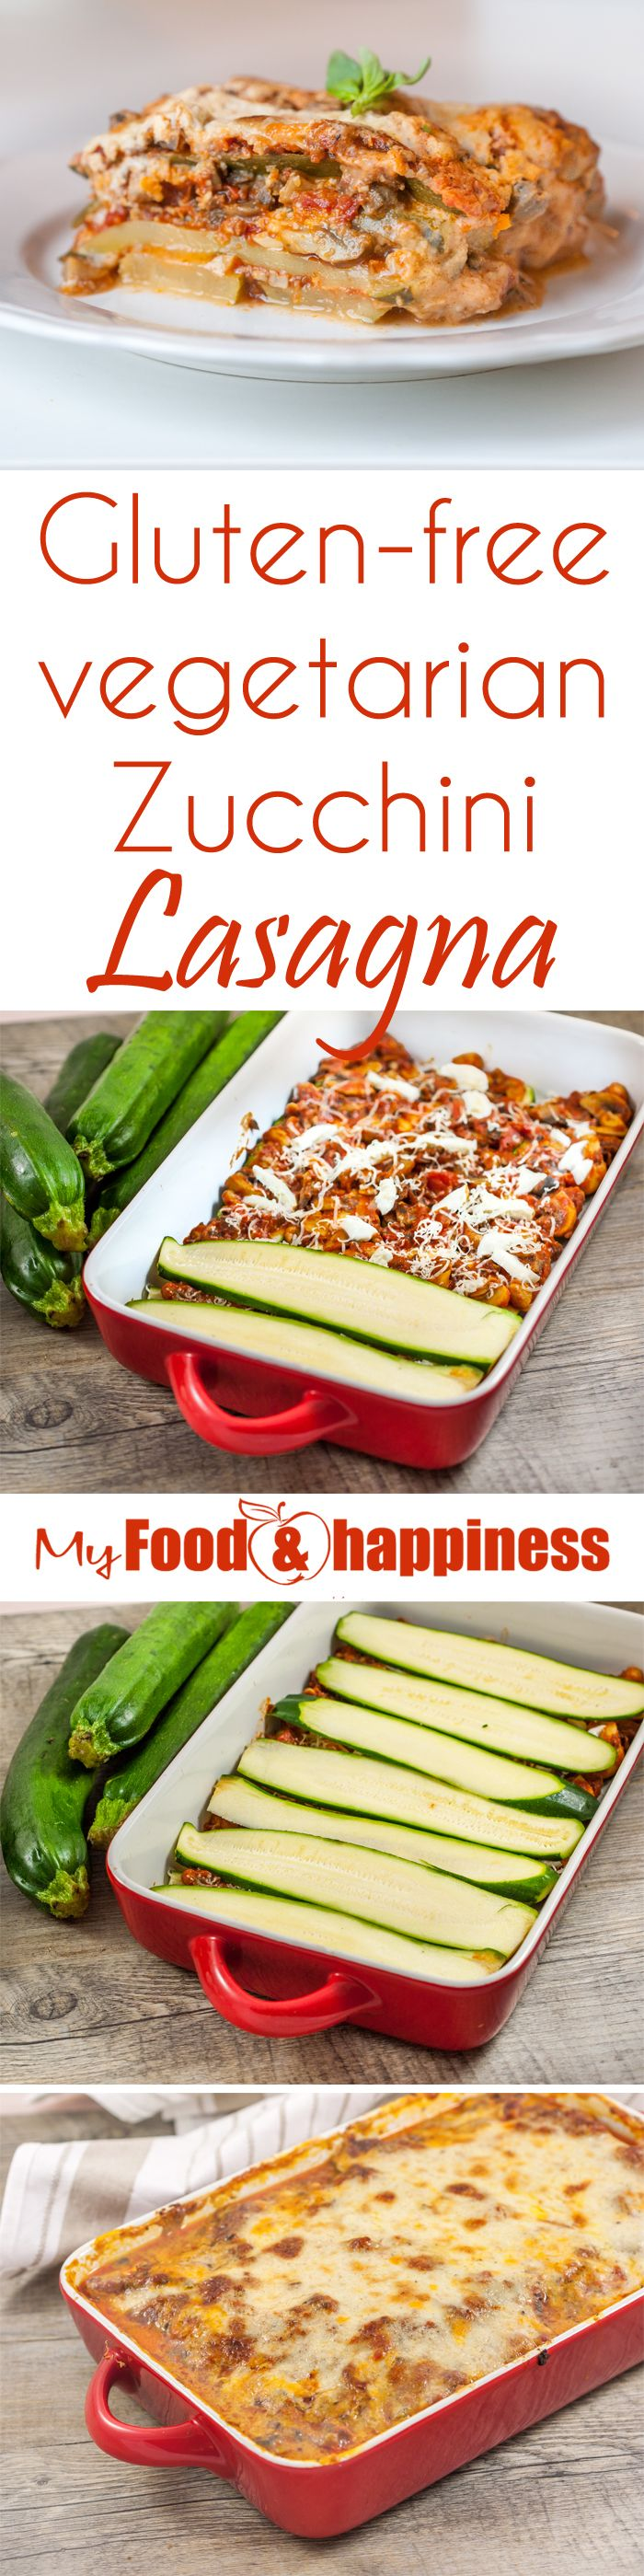 Healthy gluten & wheat-free zucchini lasagna made with zucchini slices instead of lasagna sheets. I am also using a super delicious vegetarian tomato pasta sauce with olives and mushrooms, An amazing lighter alternative if you are trying to eat less wheat products or you just want to include more veggies in your diet. Just like the classic lasagna recipe, this zucchini lasagna is topped with Béchamel sauce instead of just cheese to make it more creamy and flavourful.